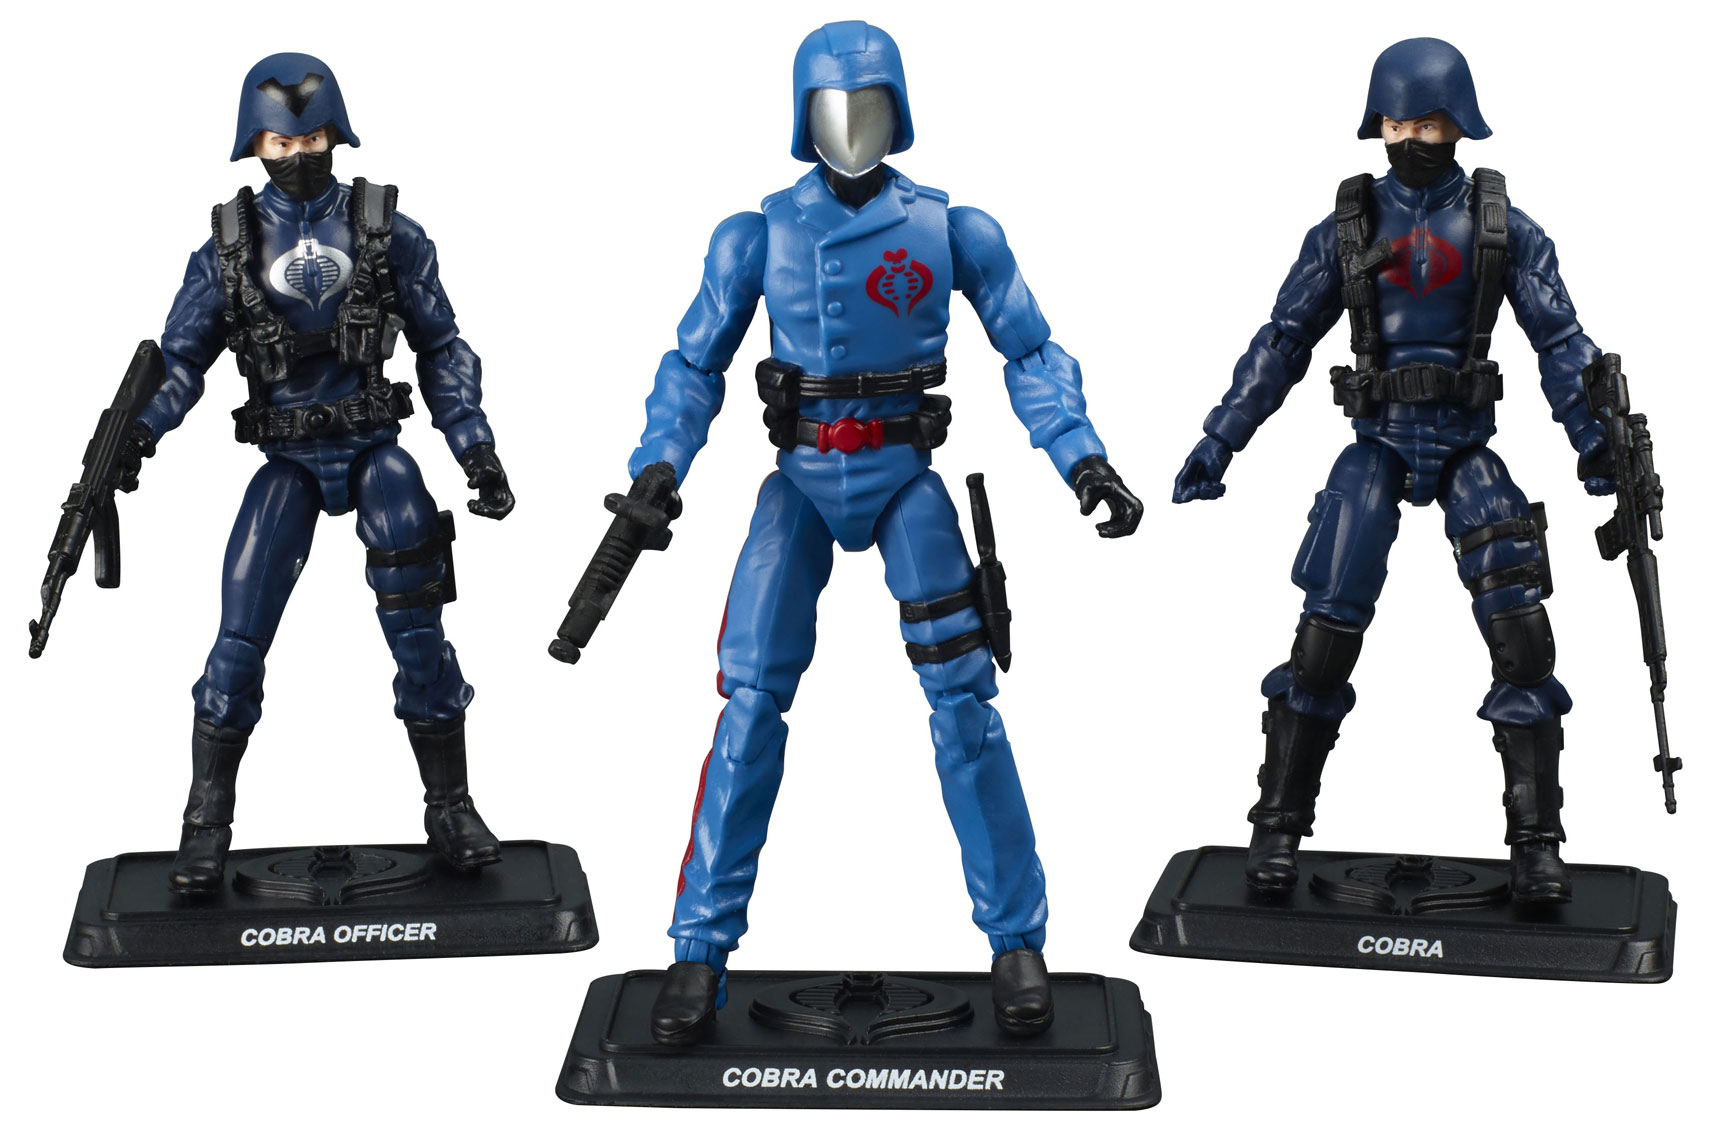 gi-joe-cobra-missile-command-headquarters-sdcc-2017-exclusive-figures